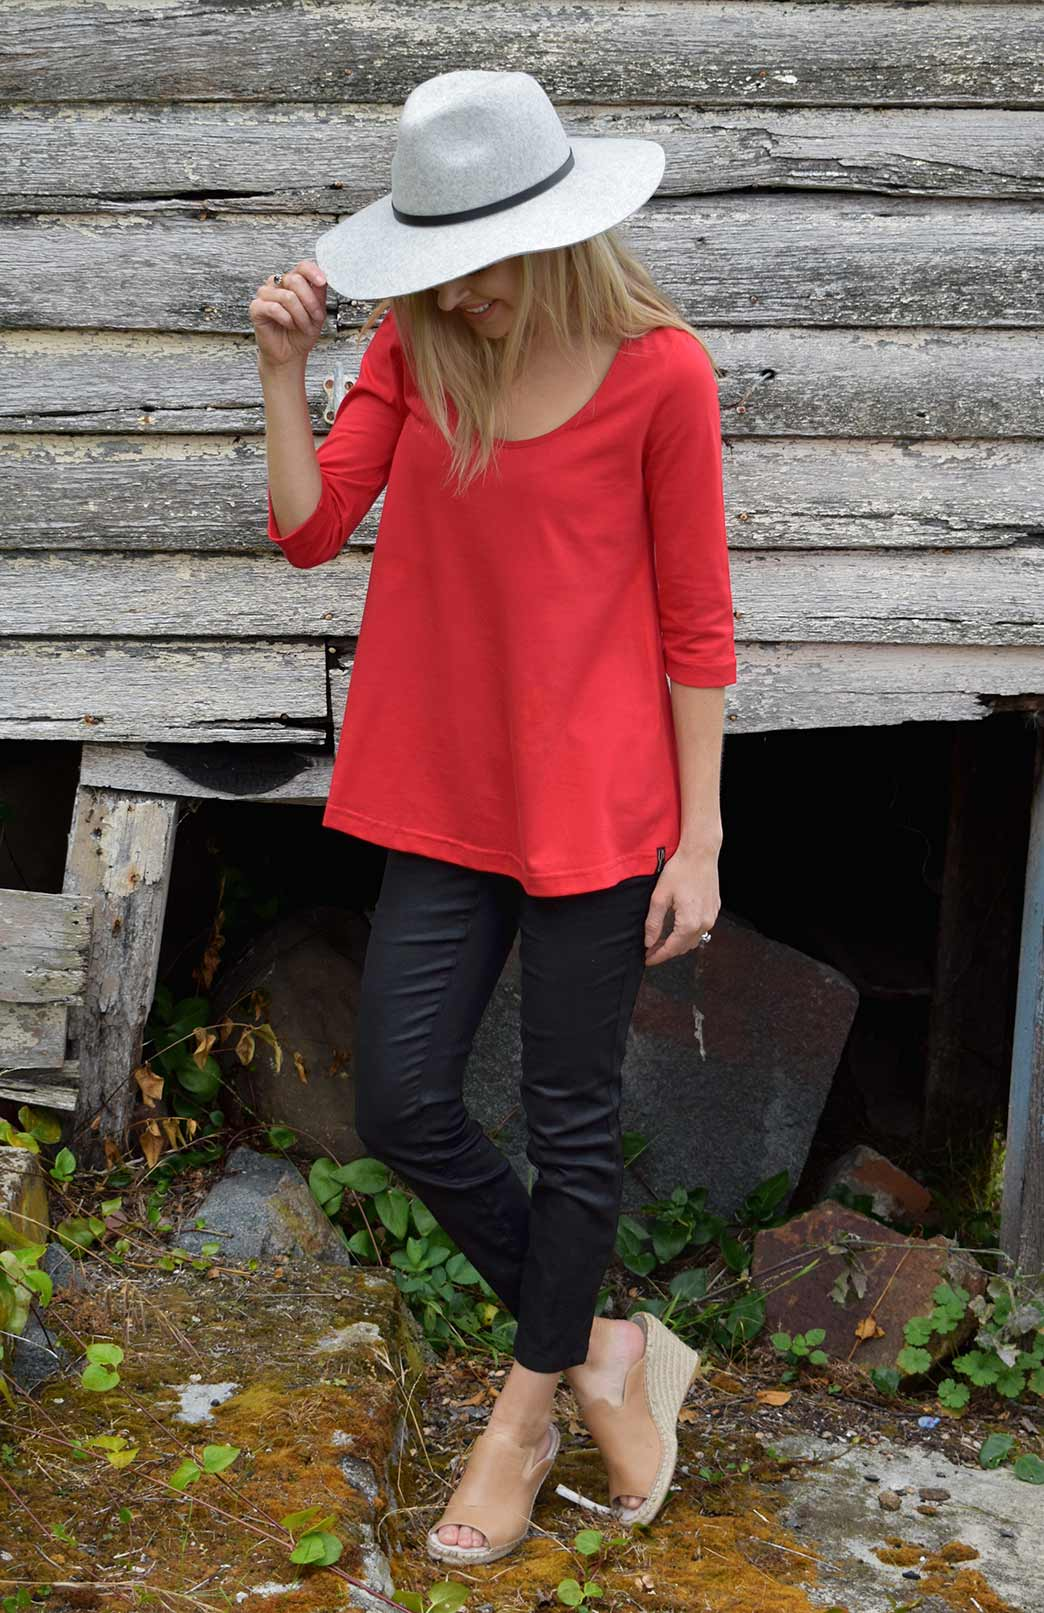 Rennie Top - Organic Cotton - Women's Organic Cotton Vermilion Red 3/4 Sleeved Swing Top with Scooped Neckline - Smitten Merino Tasmania Australia